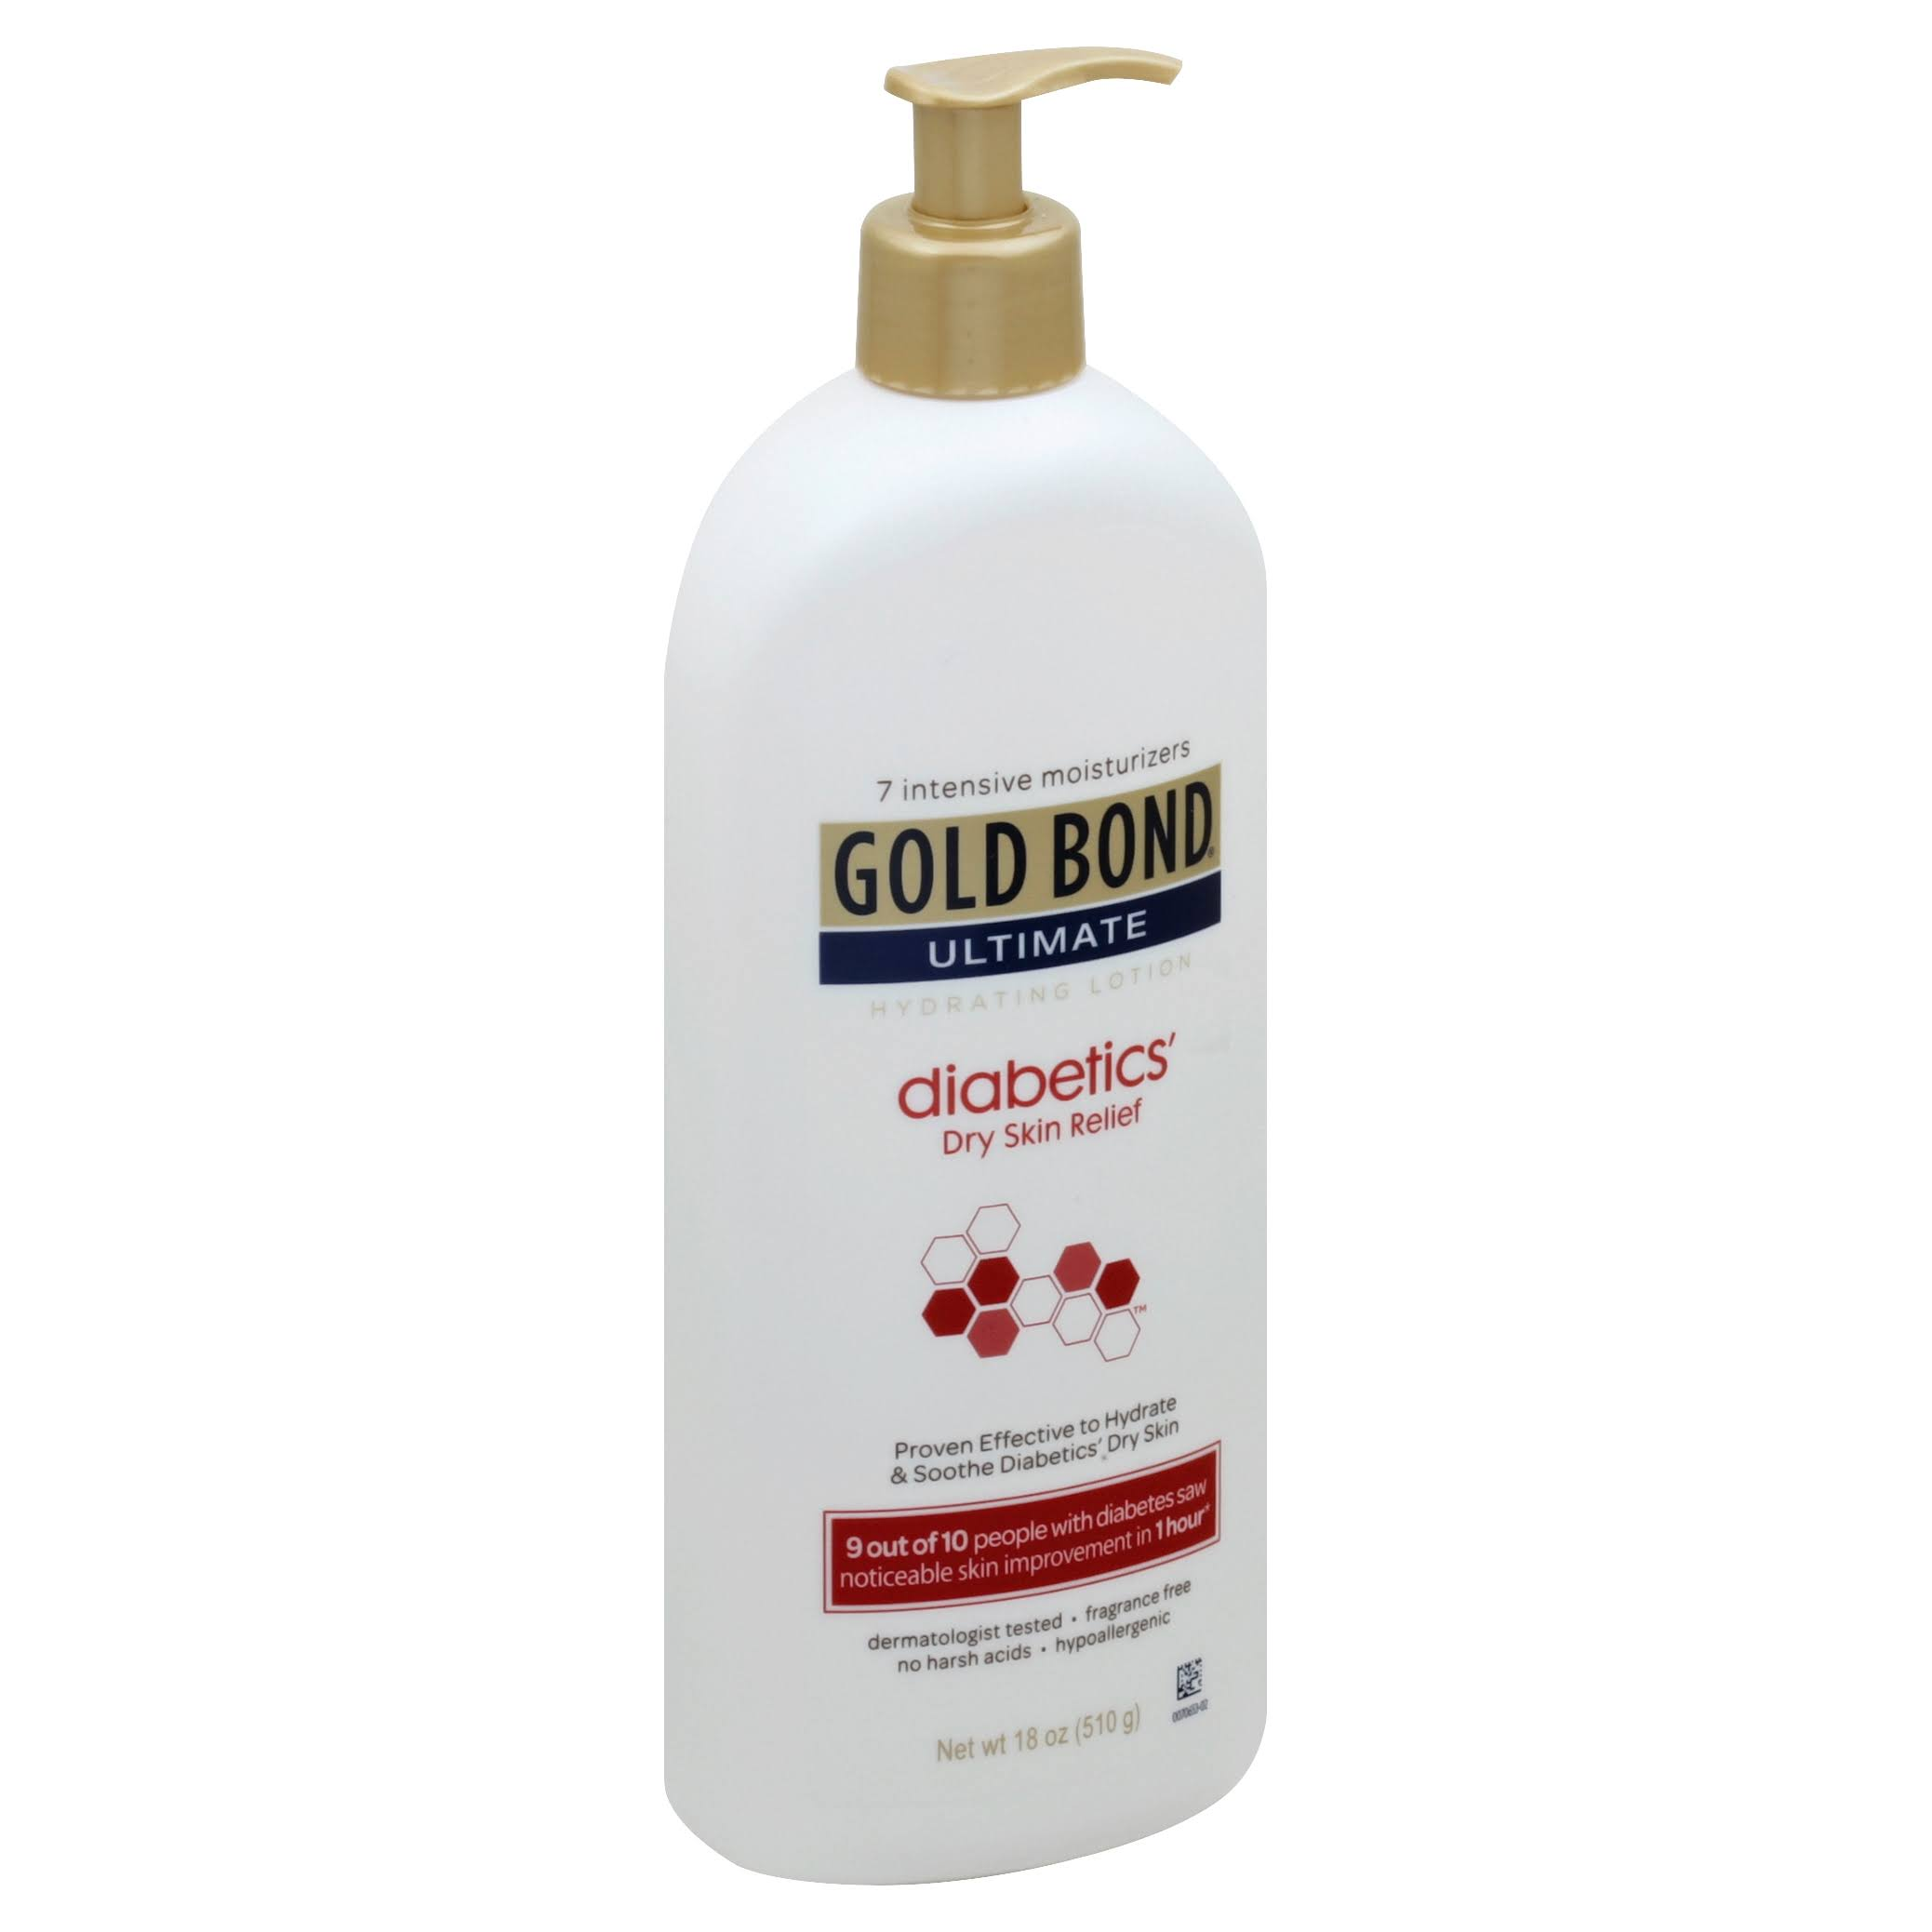 Gold Bond Ultimate Diabetics' Dry Skin Relief Hydrating Lotion - 18oz